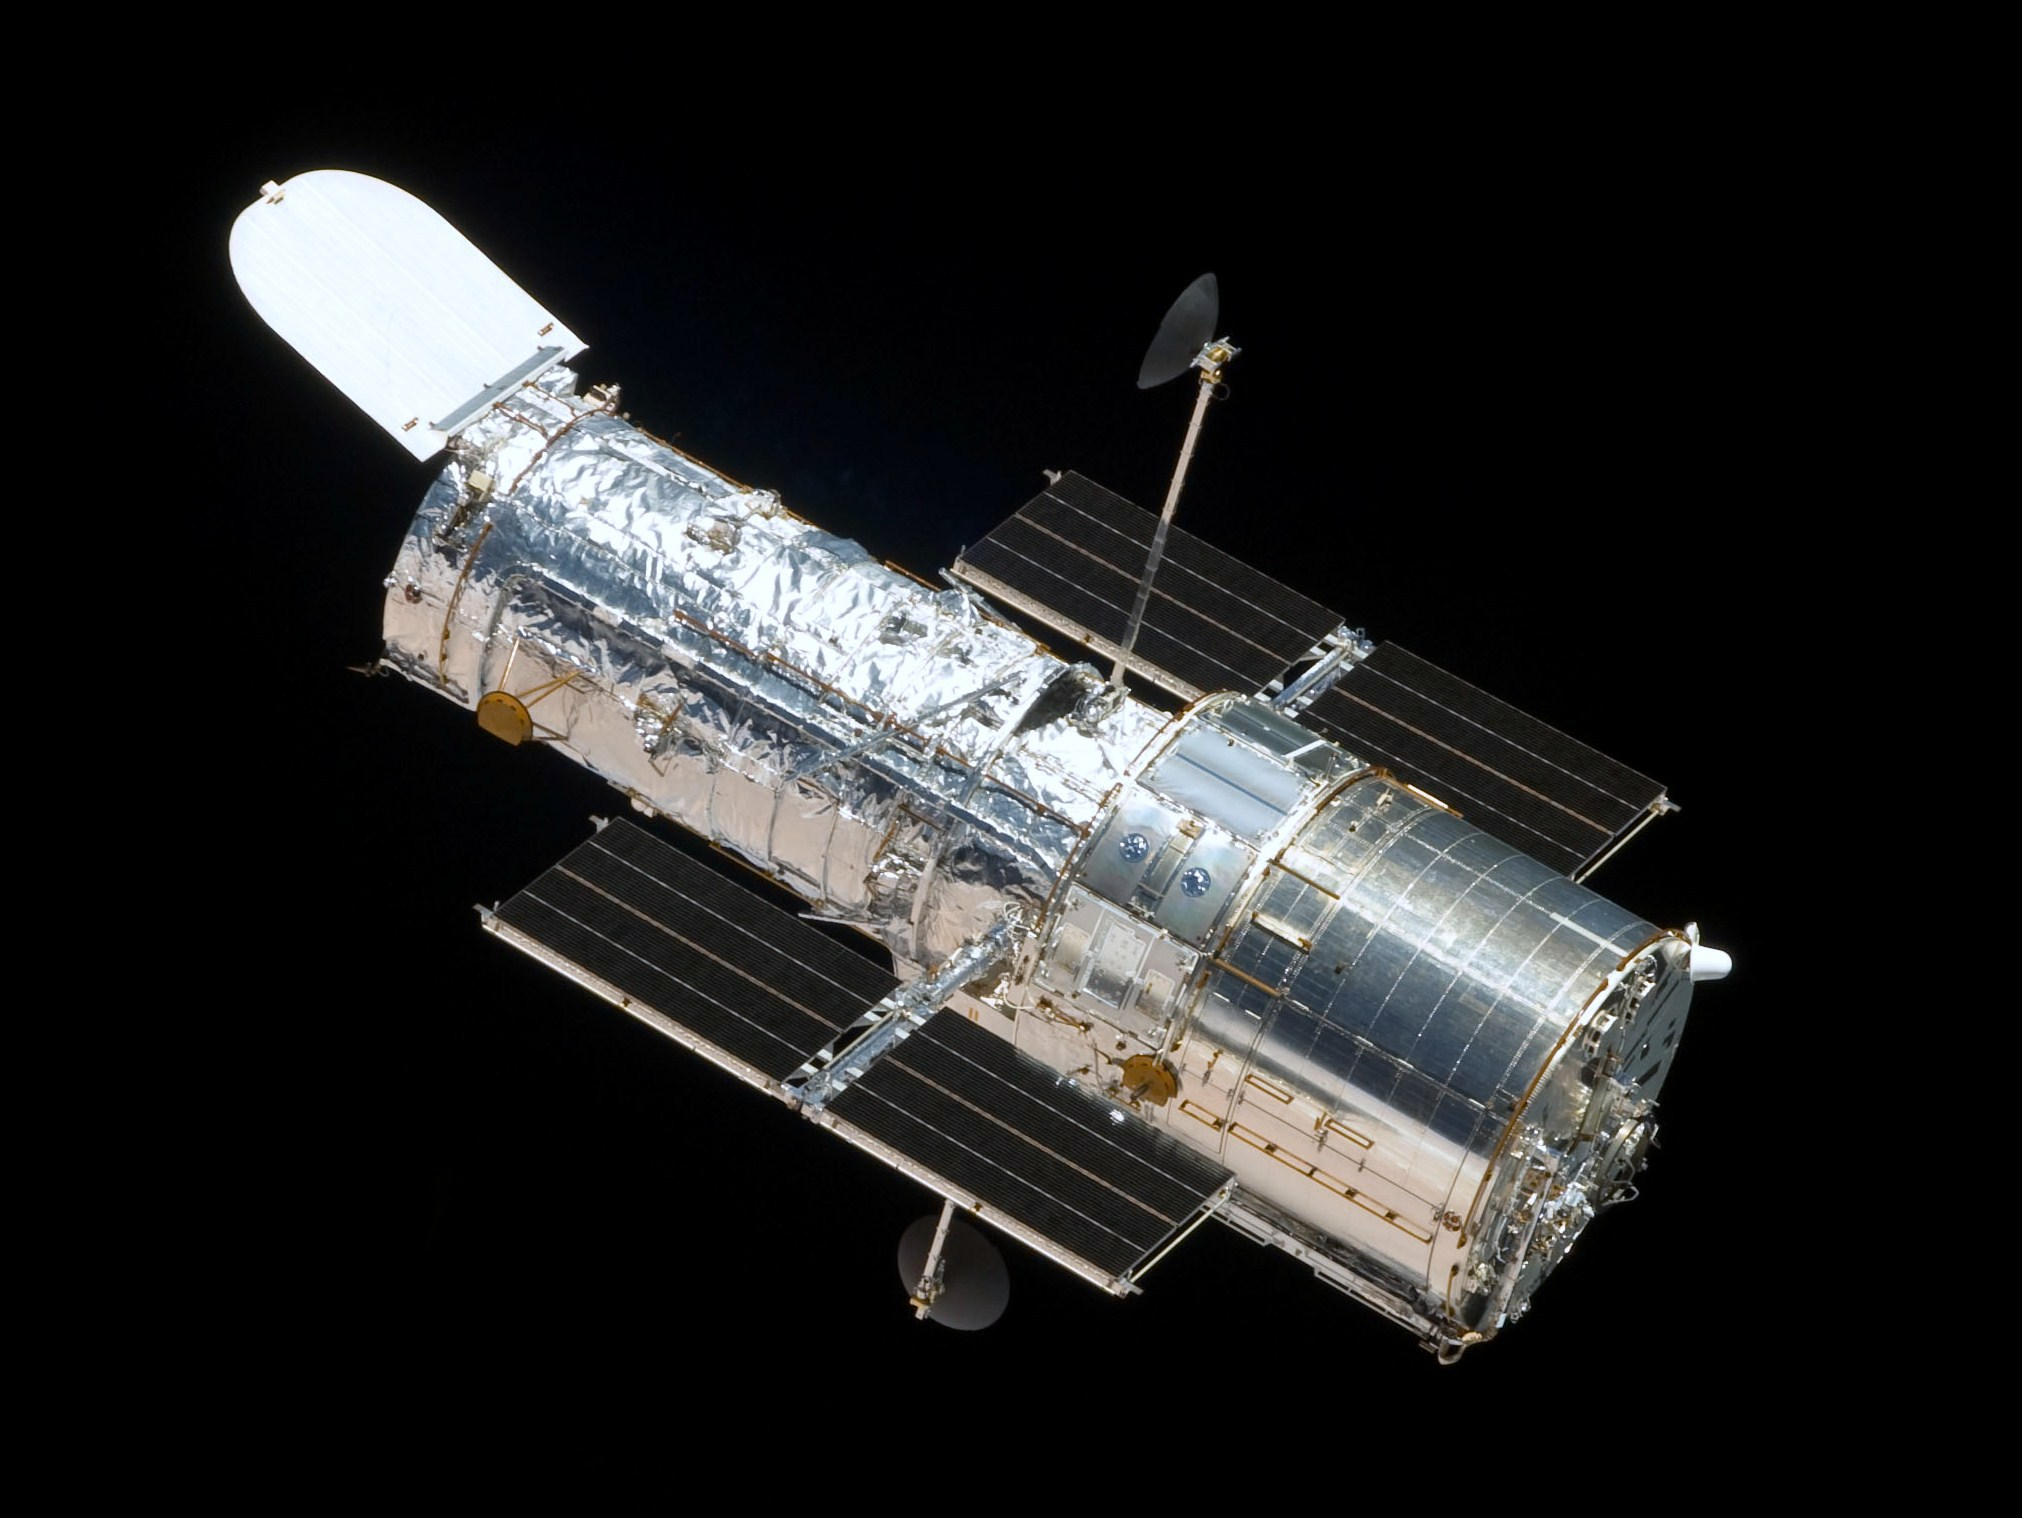 Hubble Space Telescope Images Wallpaper page 2   Pics about space 2022x1518